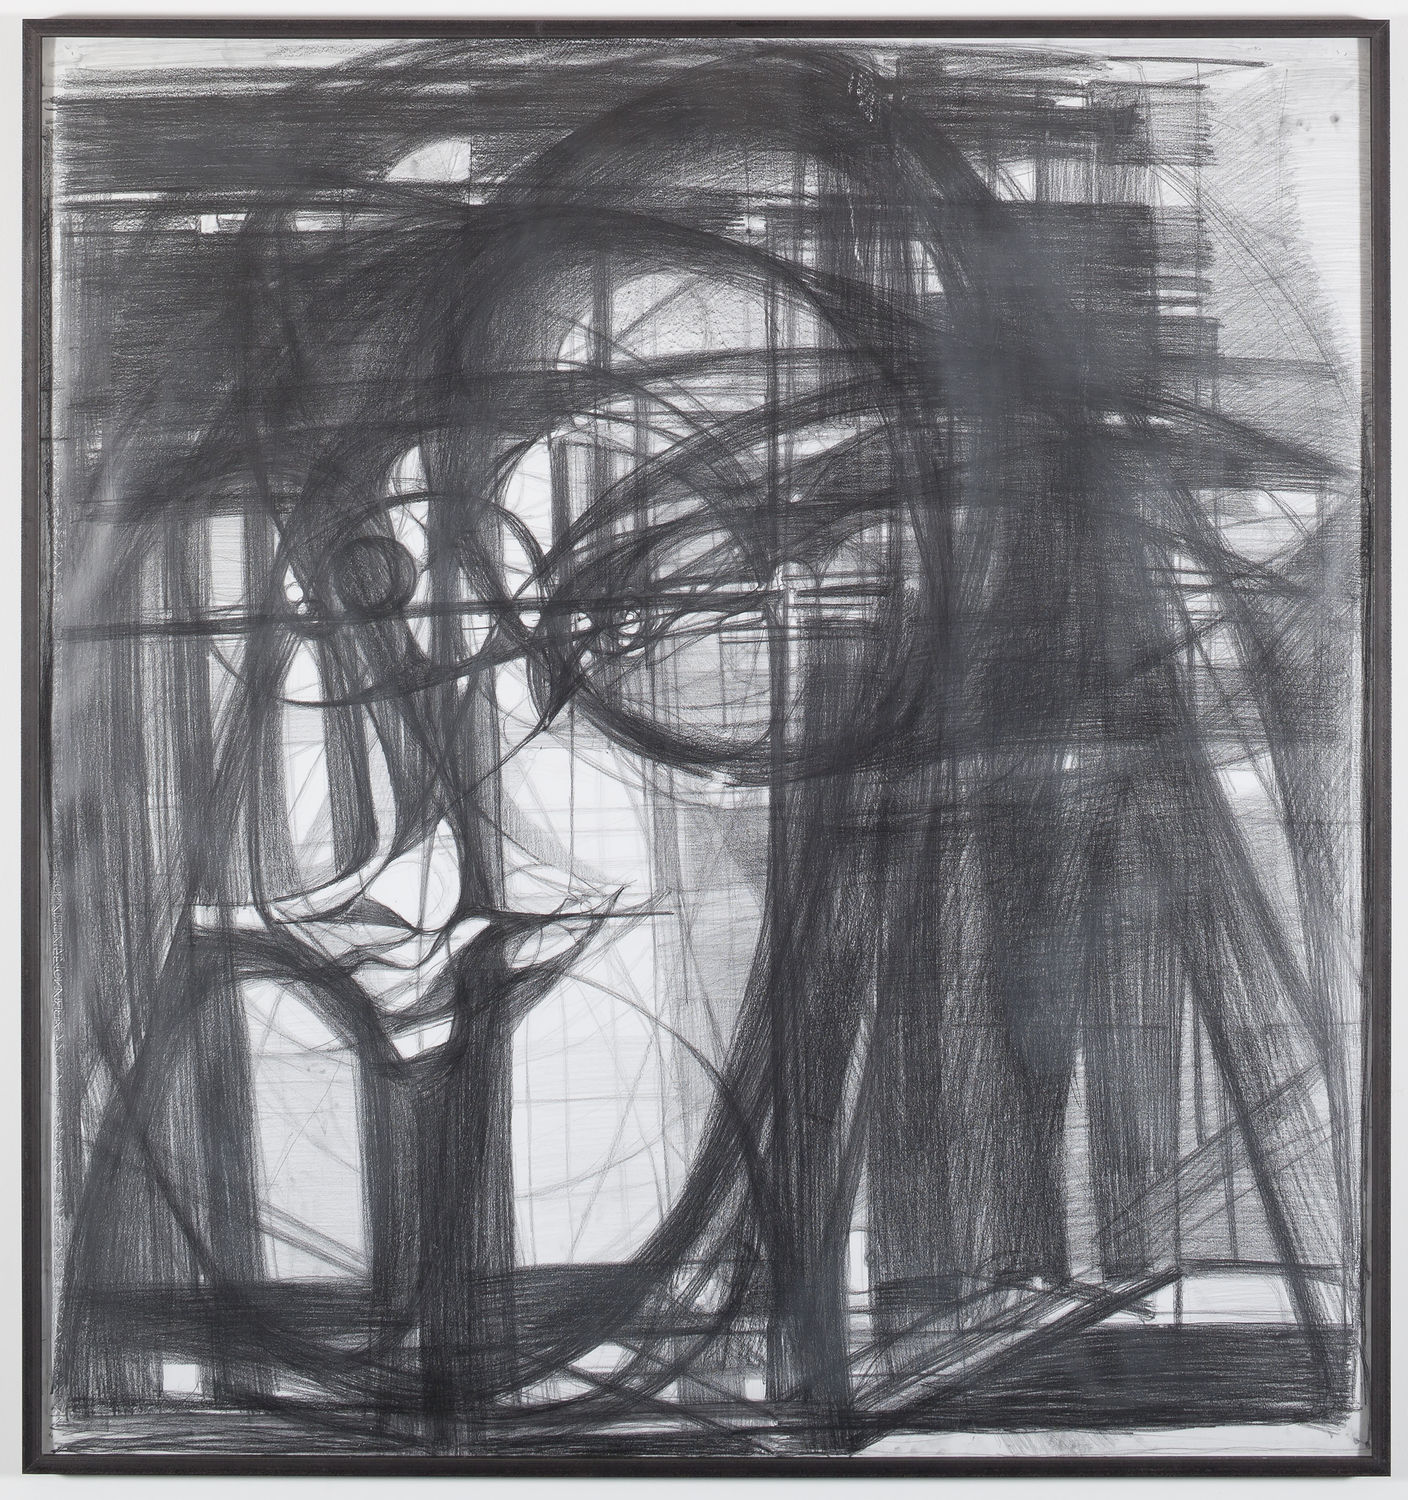 Marisa Merz, Untitled, 1992.